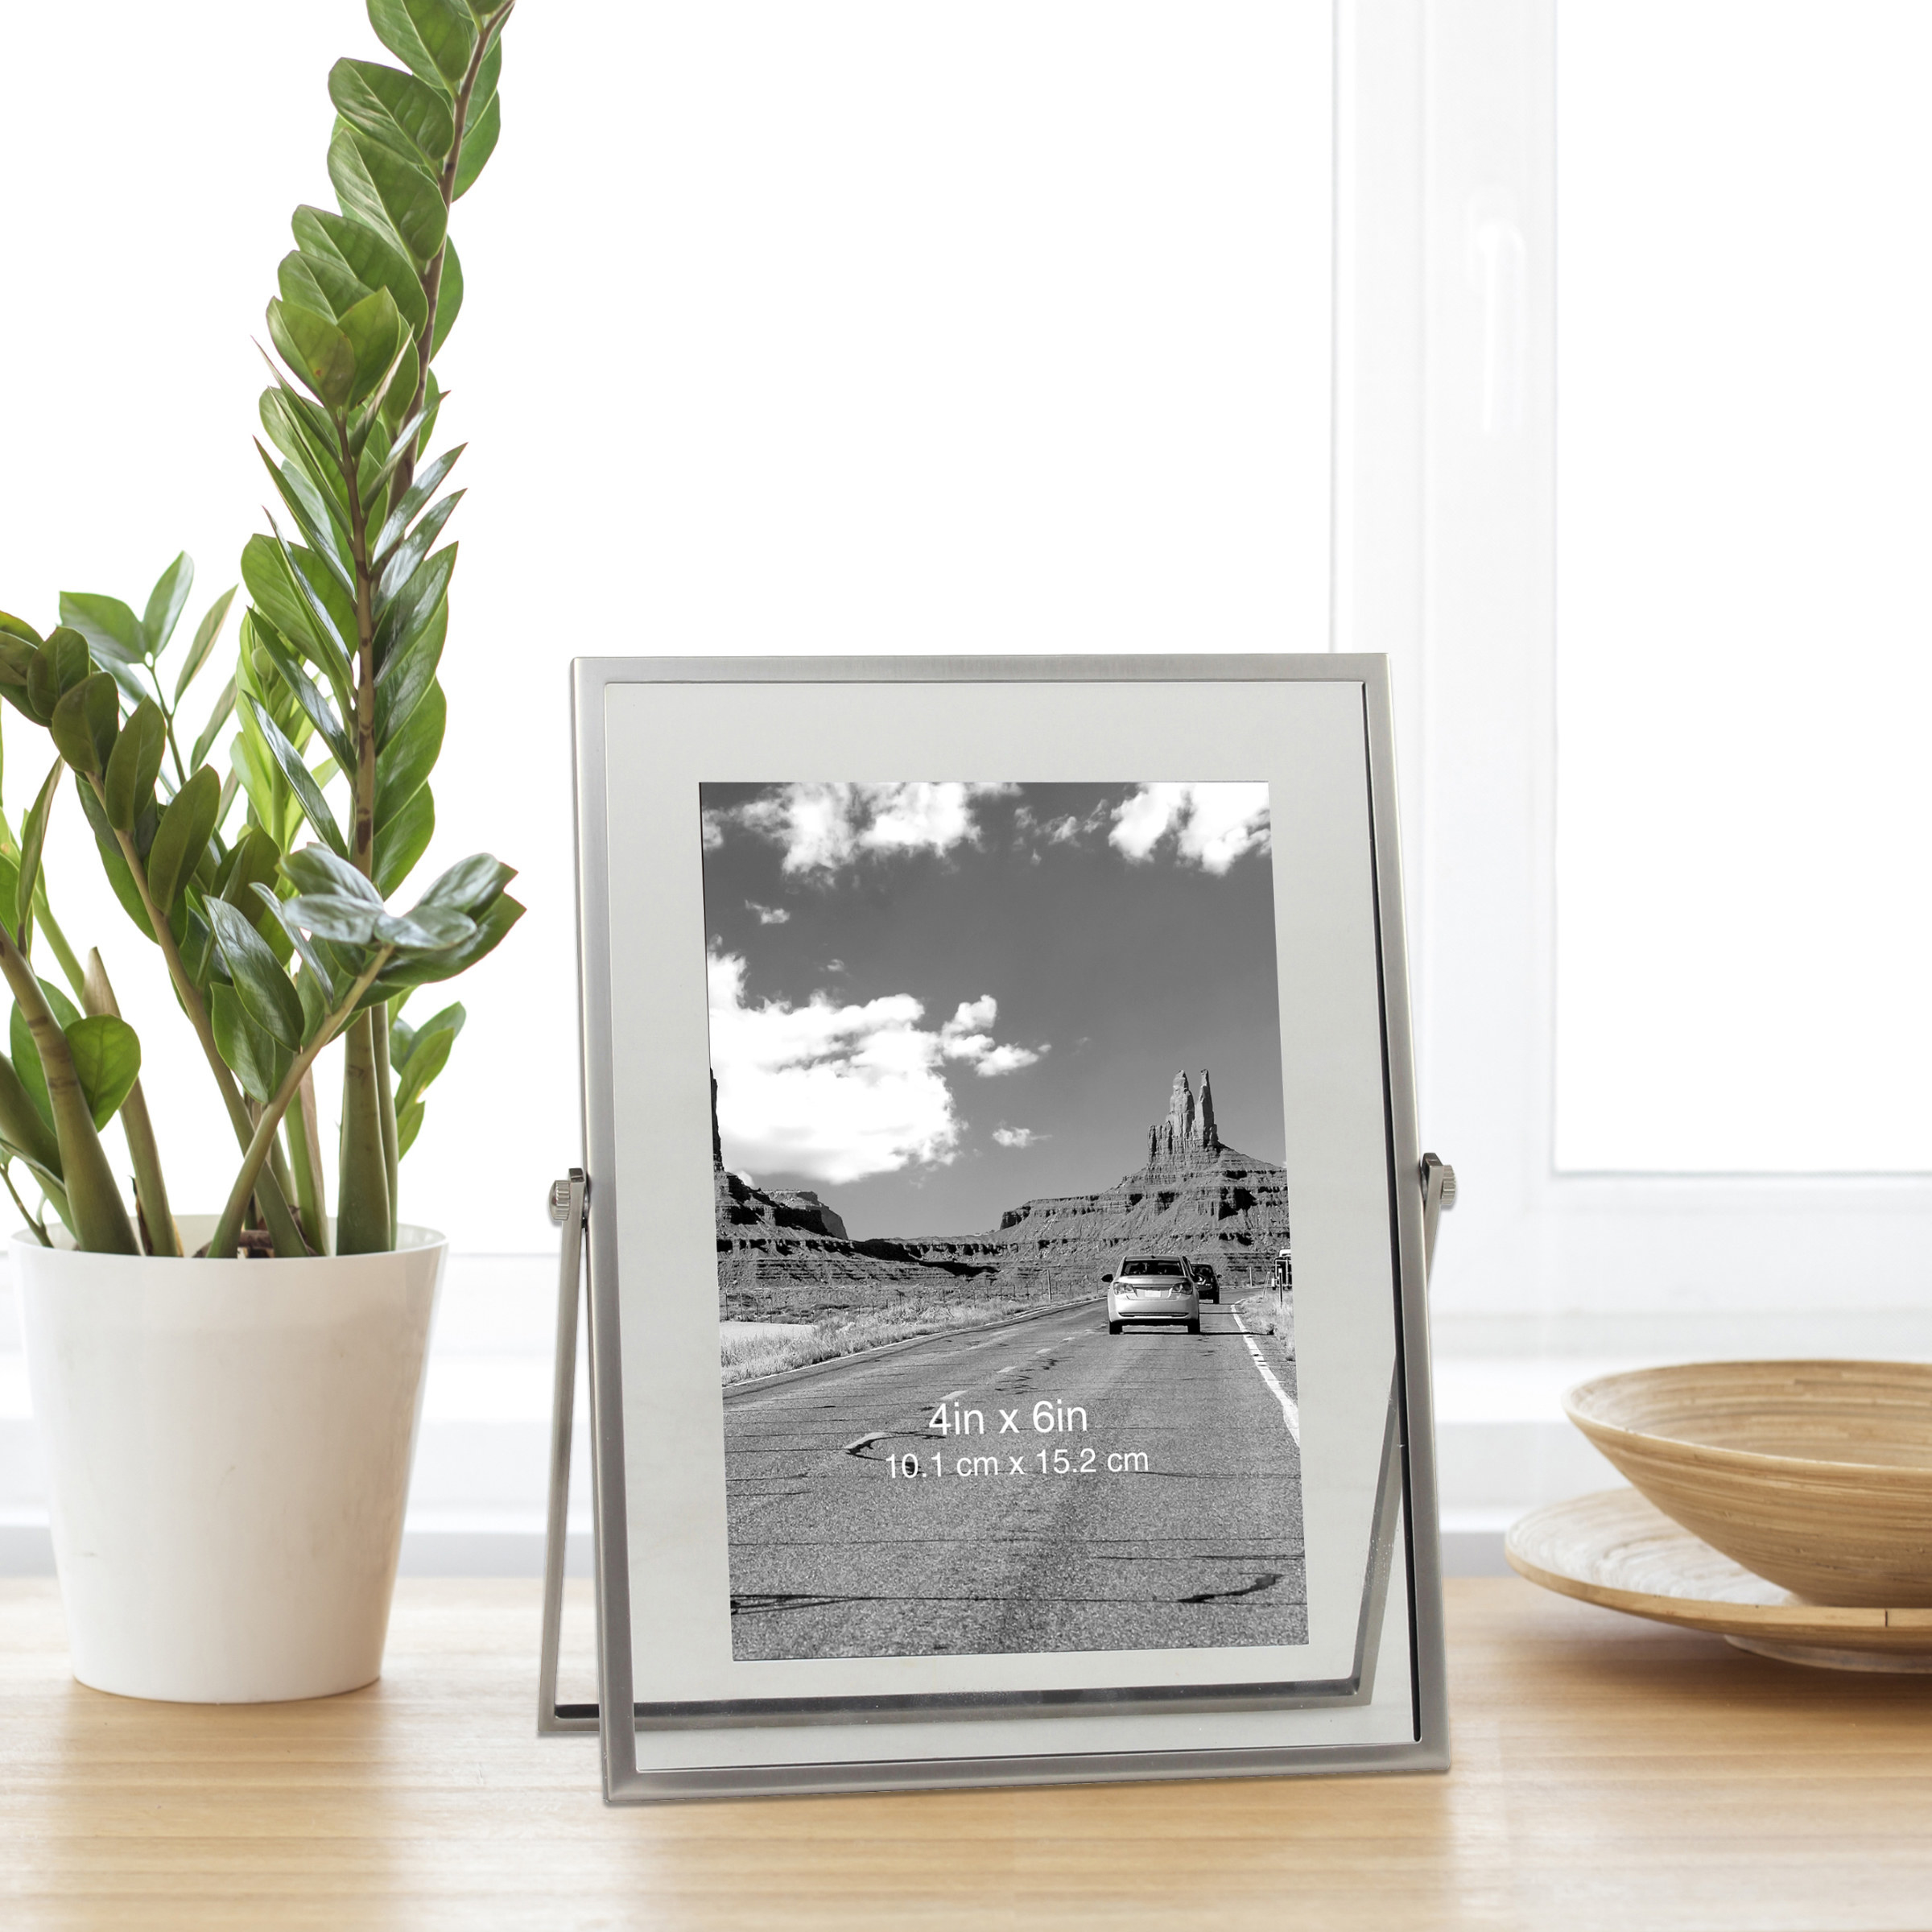 The floating frame in silver